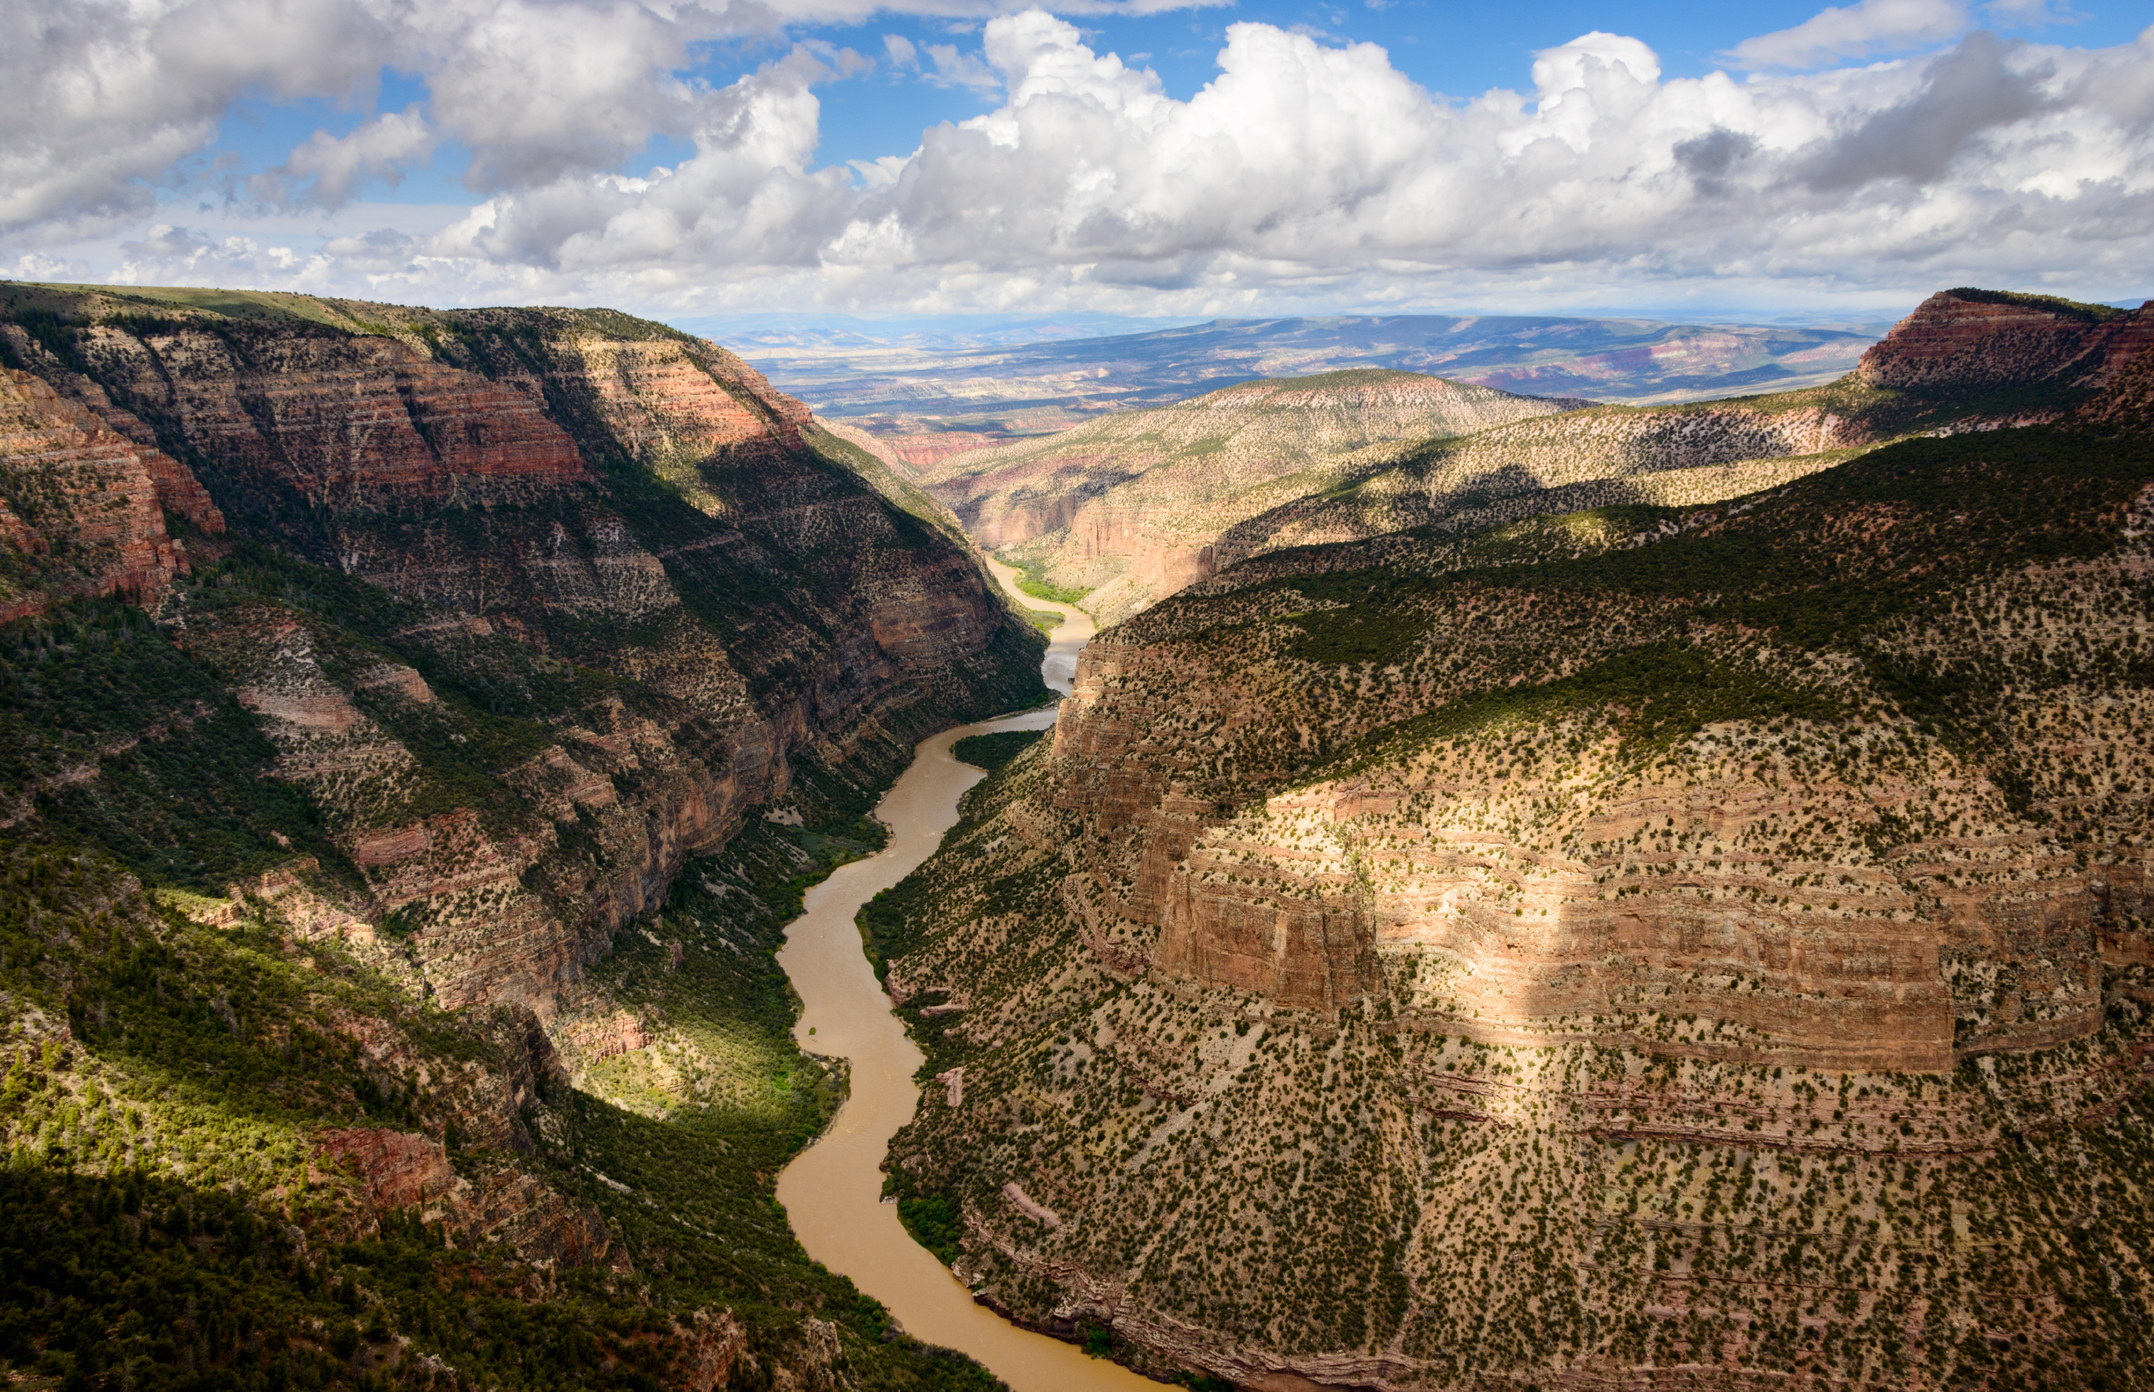 a deep canyon with a brown river running through the valley below